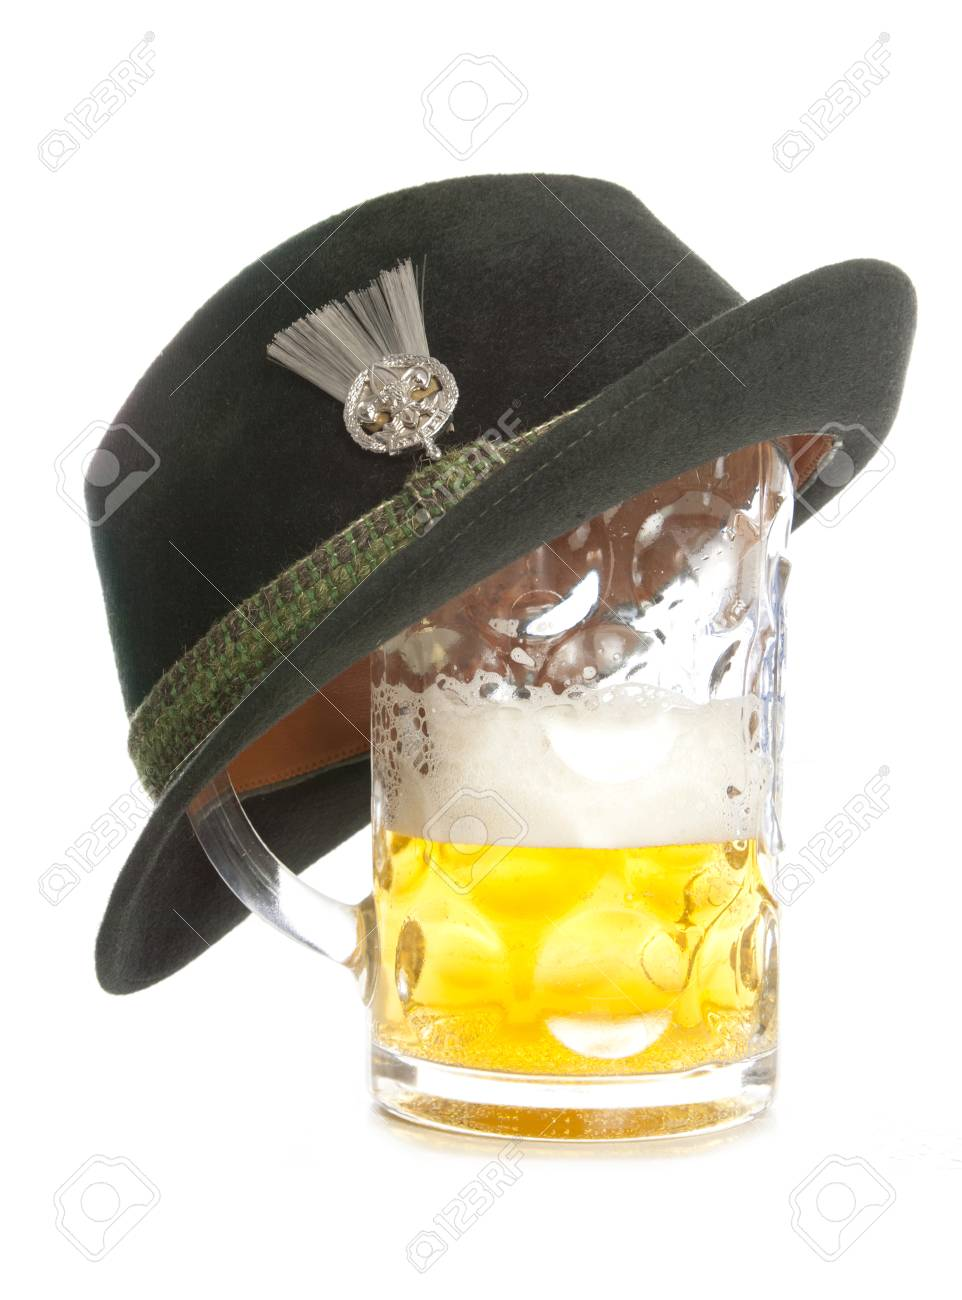 d6265d83736 beer and tryolean hat cutout Stock Photo - 39575452